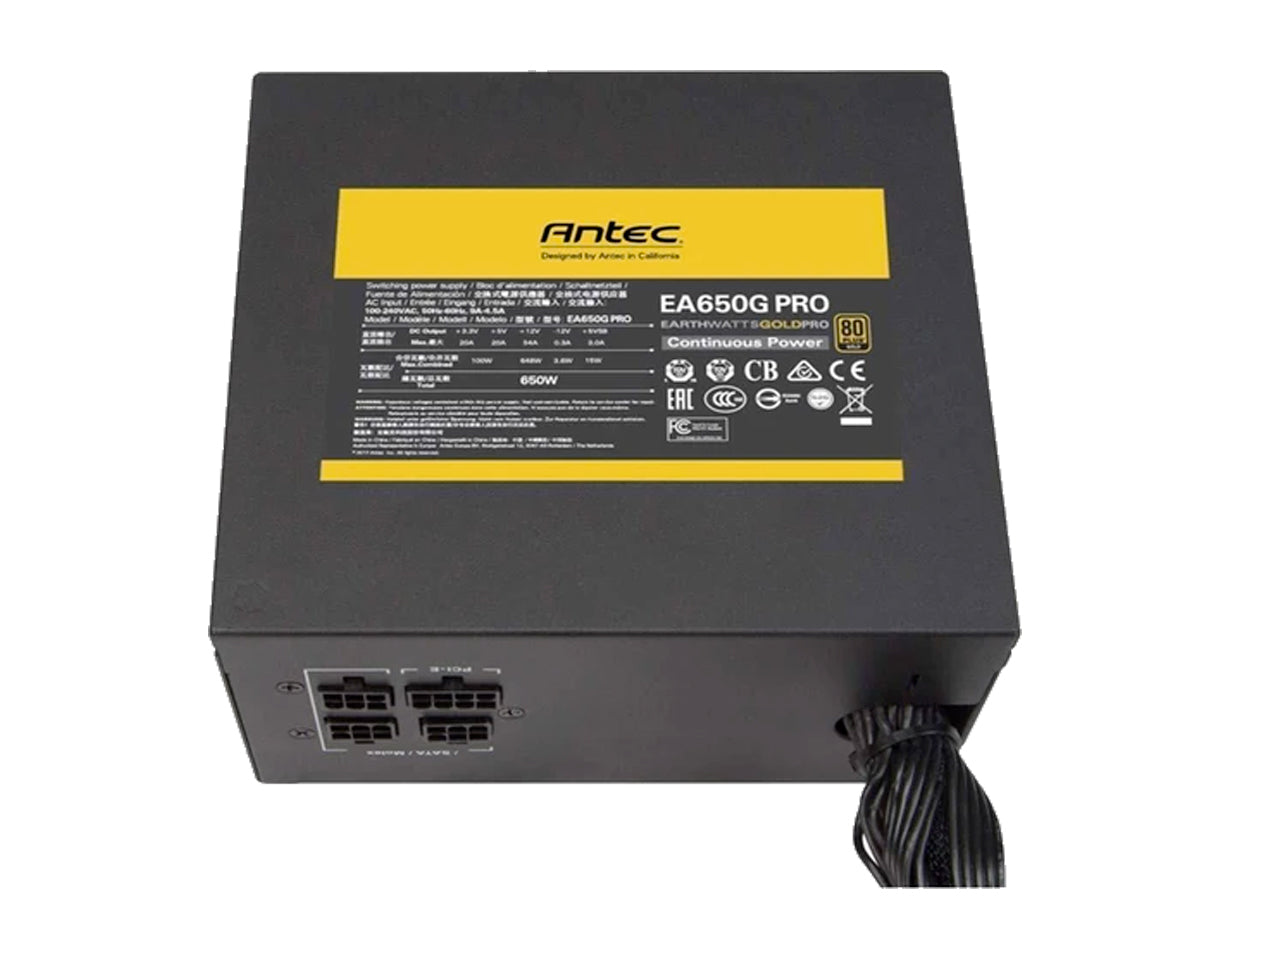 Antec EA650G PRO Earthwatts Gold Pro 650W Hybrid Modular Power Supply-computerspace